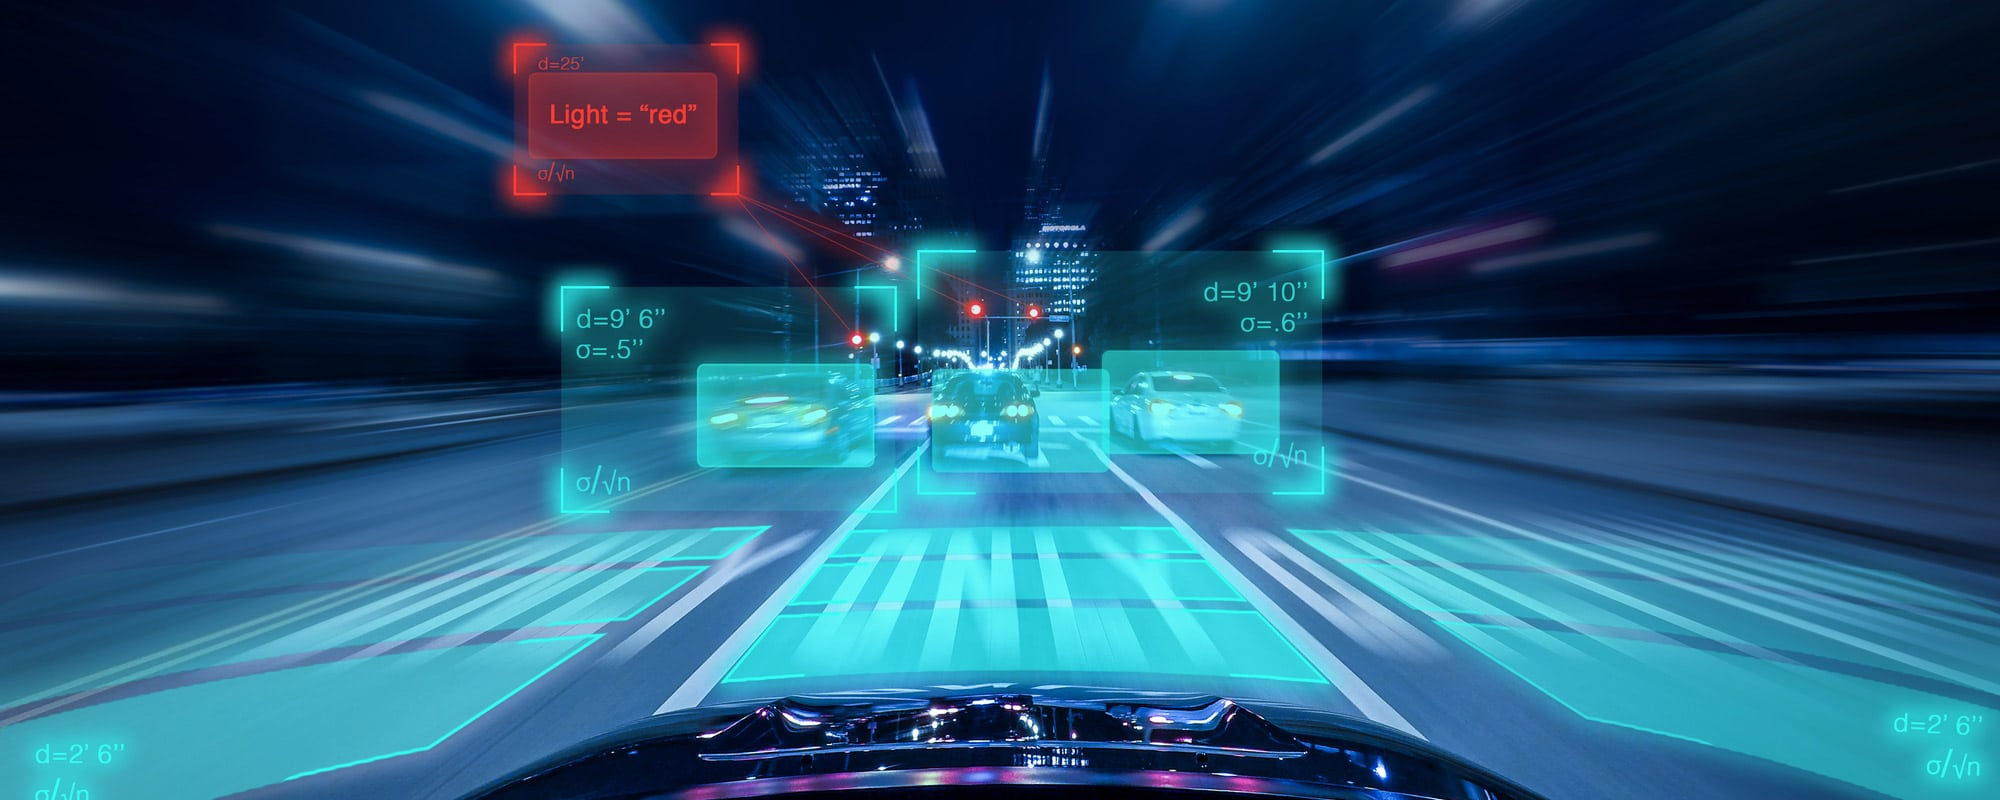 In 2039, Could Fully Autonomous and Connected Cars Exist?